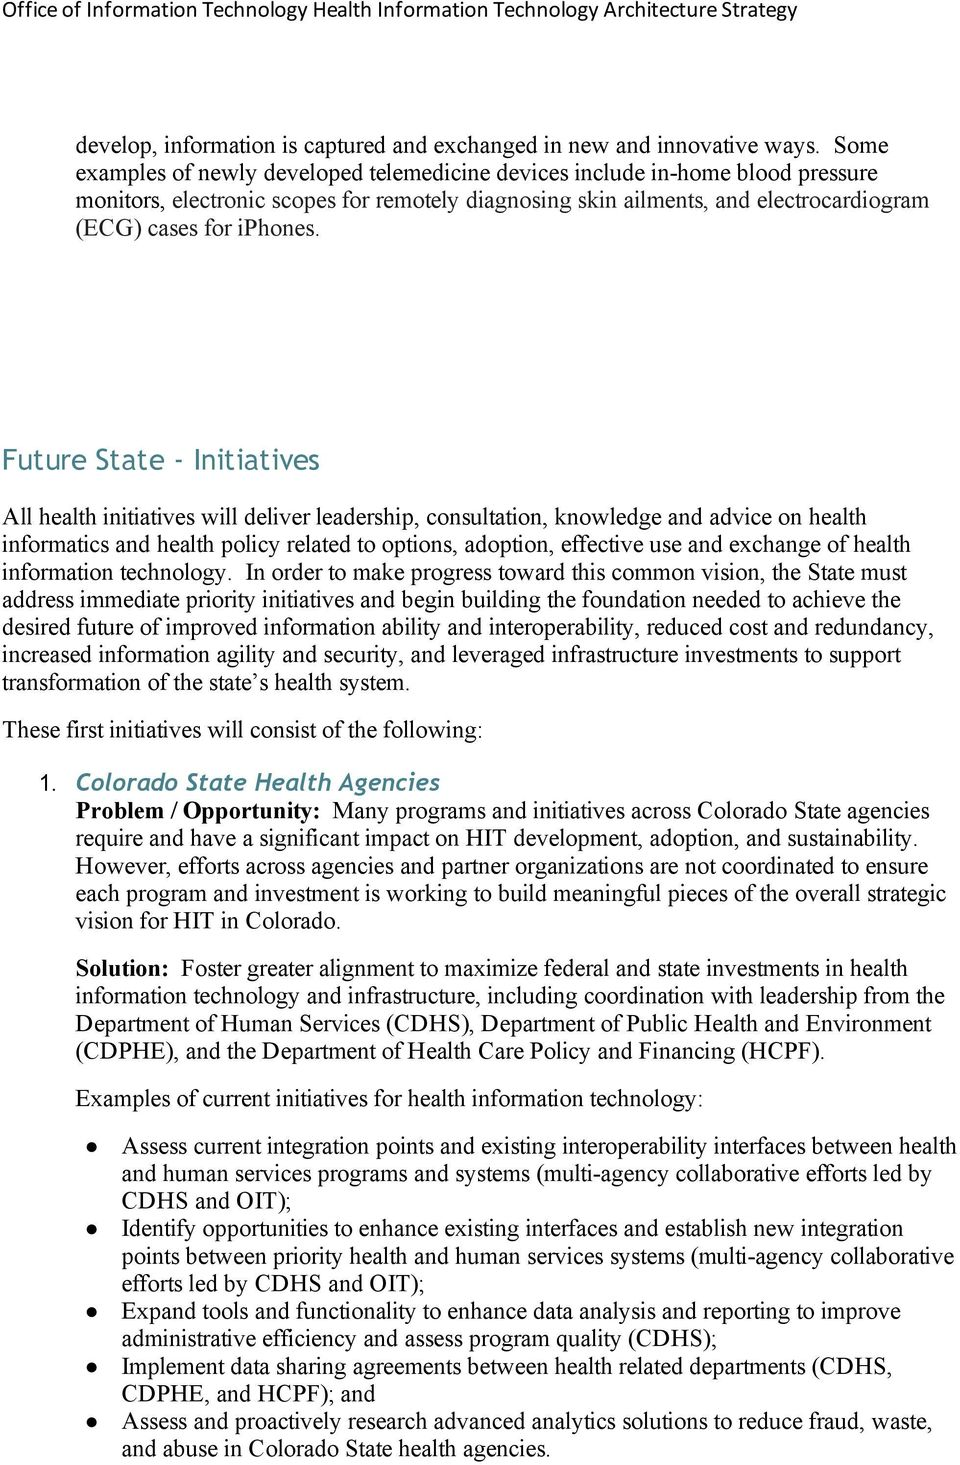 Future State Initiatives All health initiatives will deliver leadership, consultation, knowledge and advice on health informatics and health policy related to options, adoption, effective use and